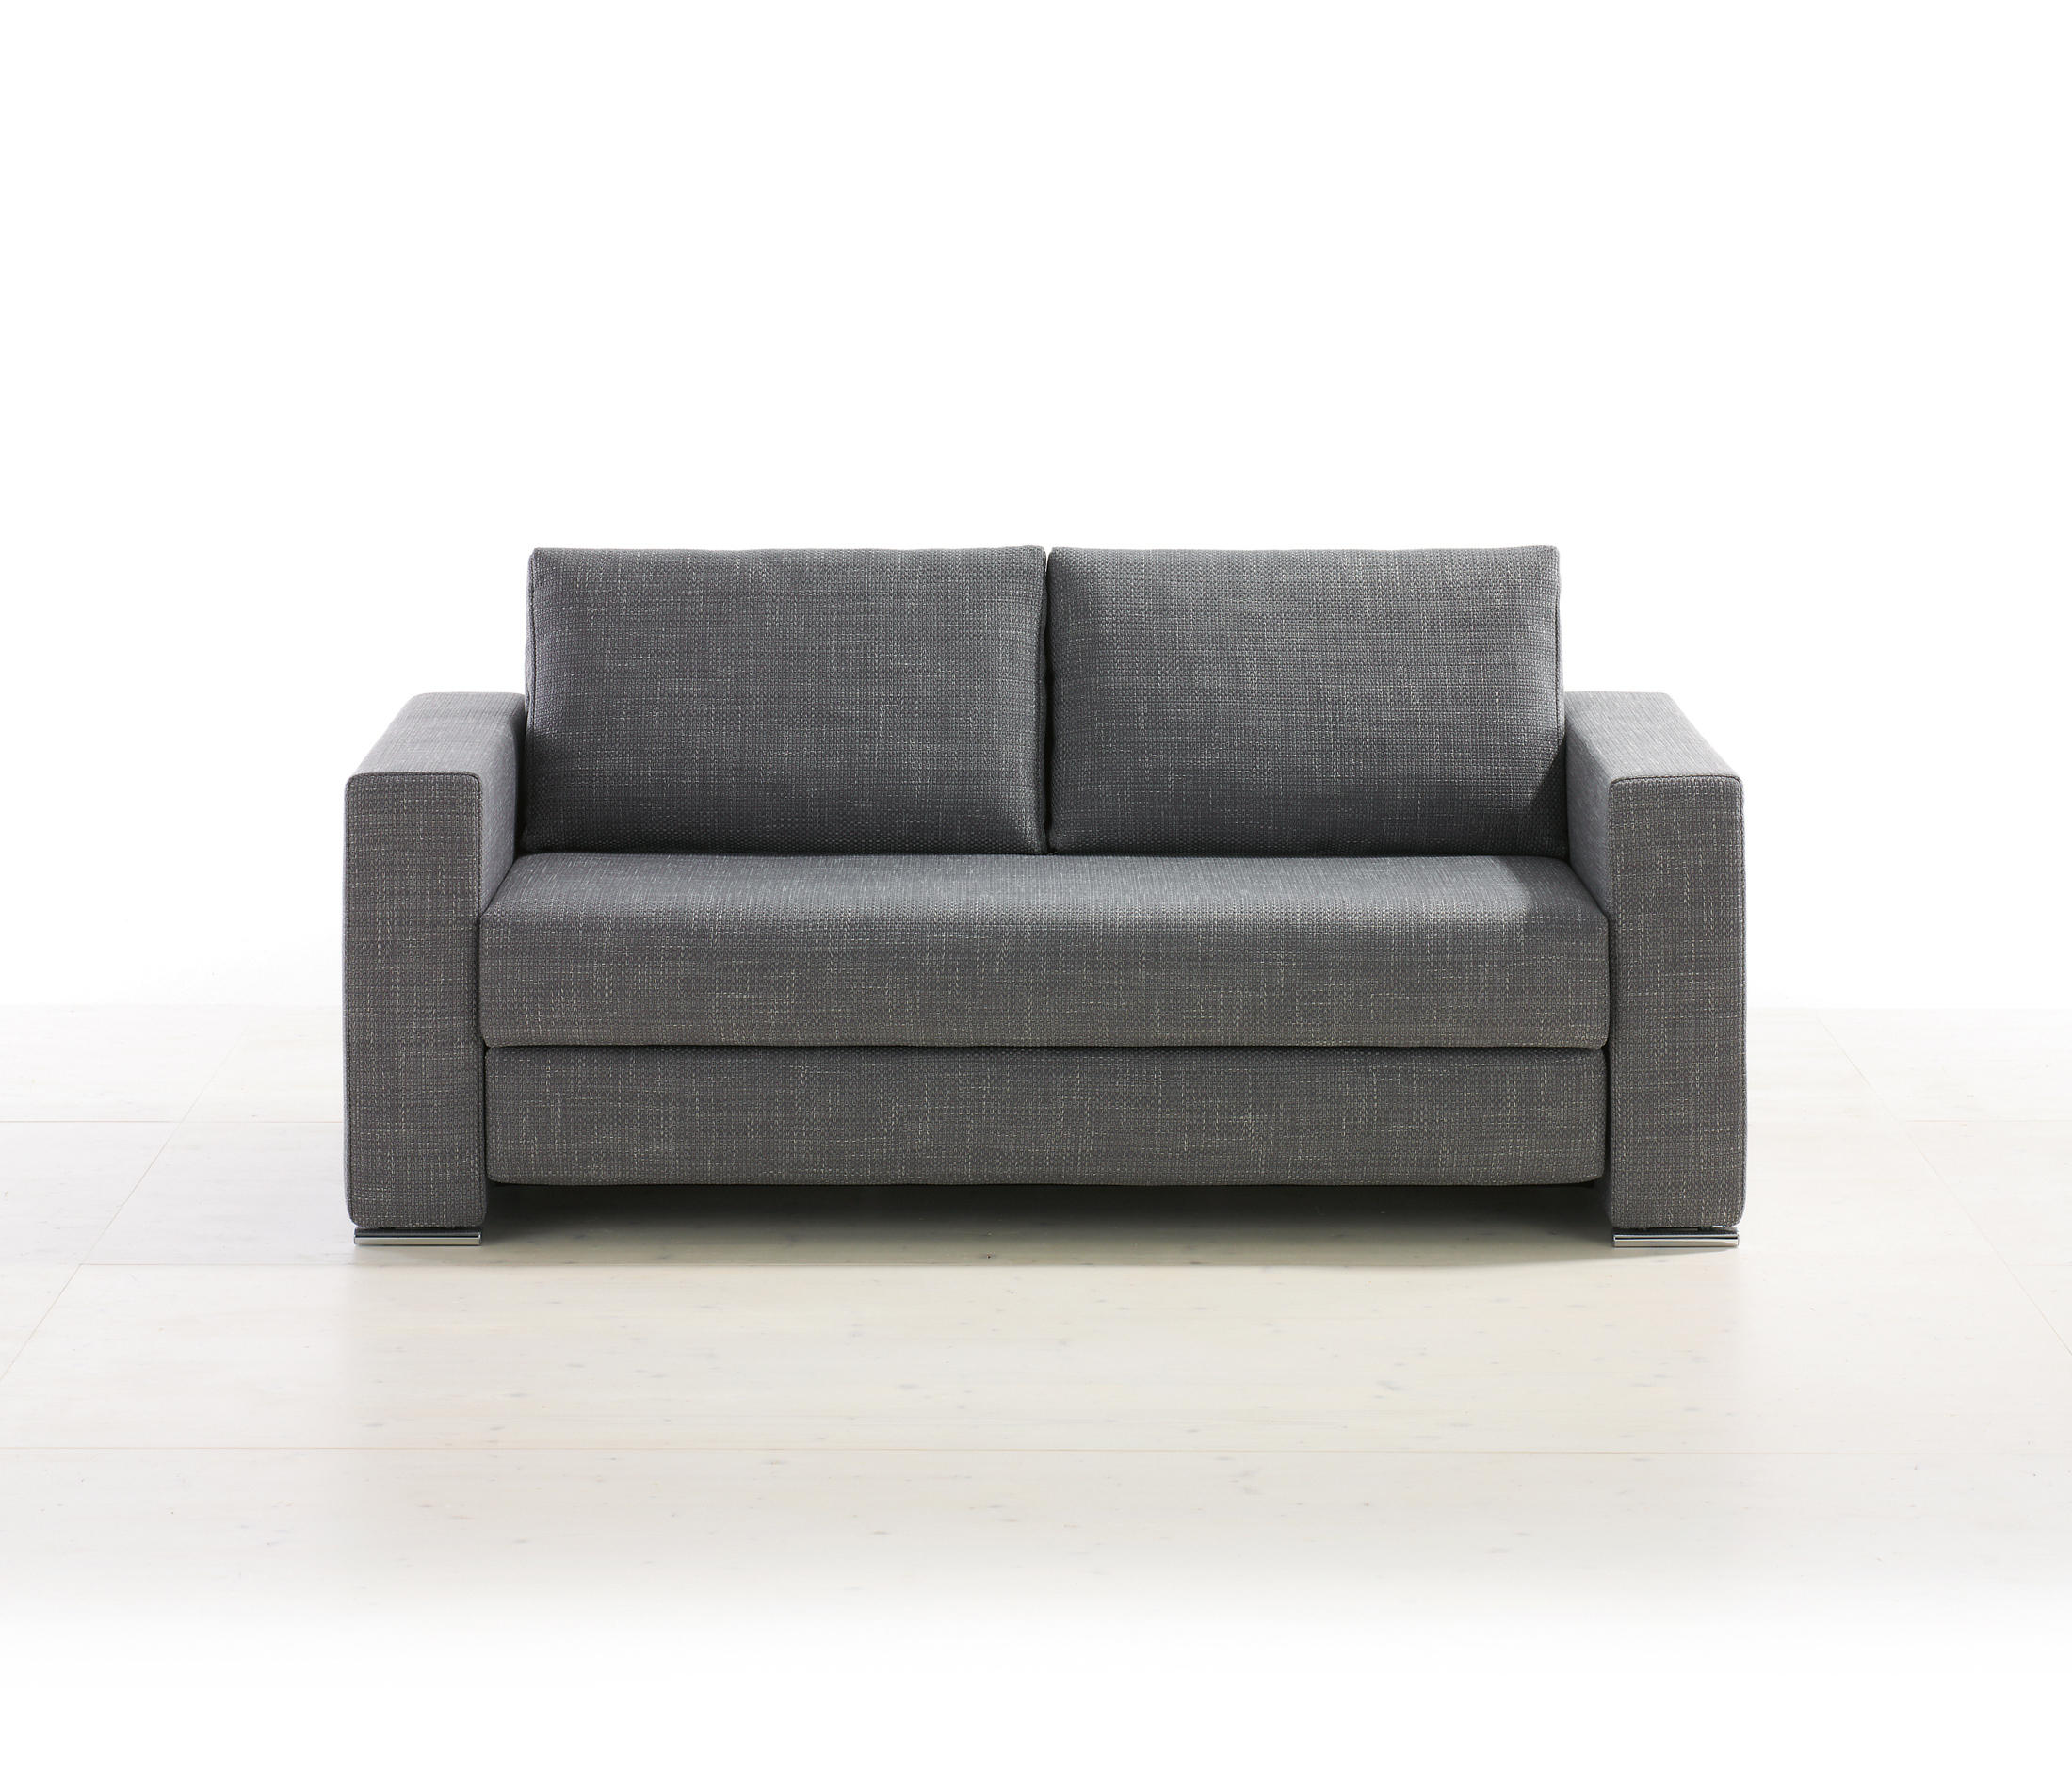 loop sofa bed sofa beds by die collection architonic